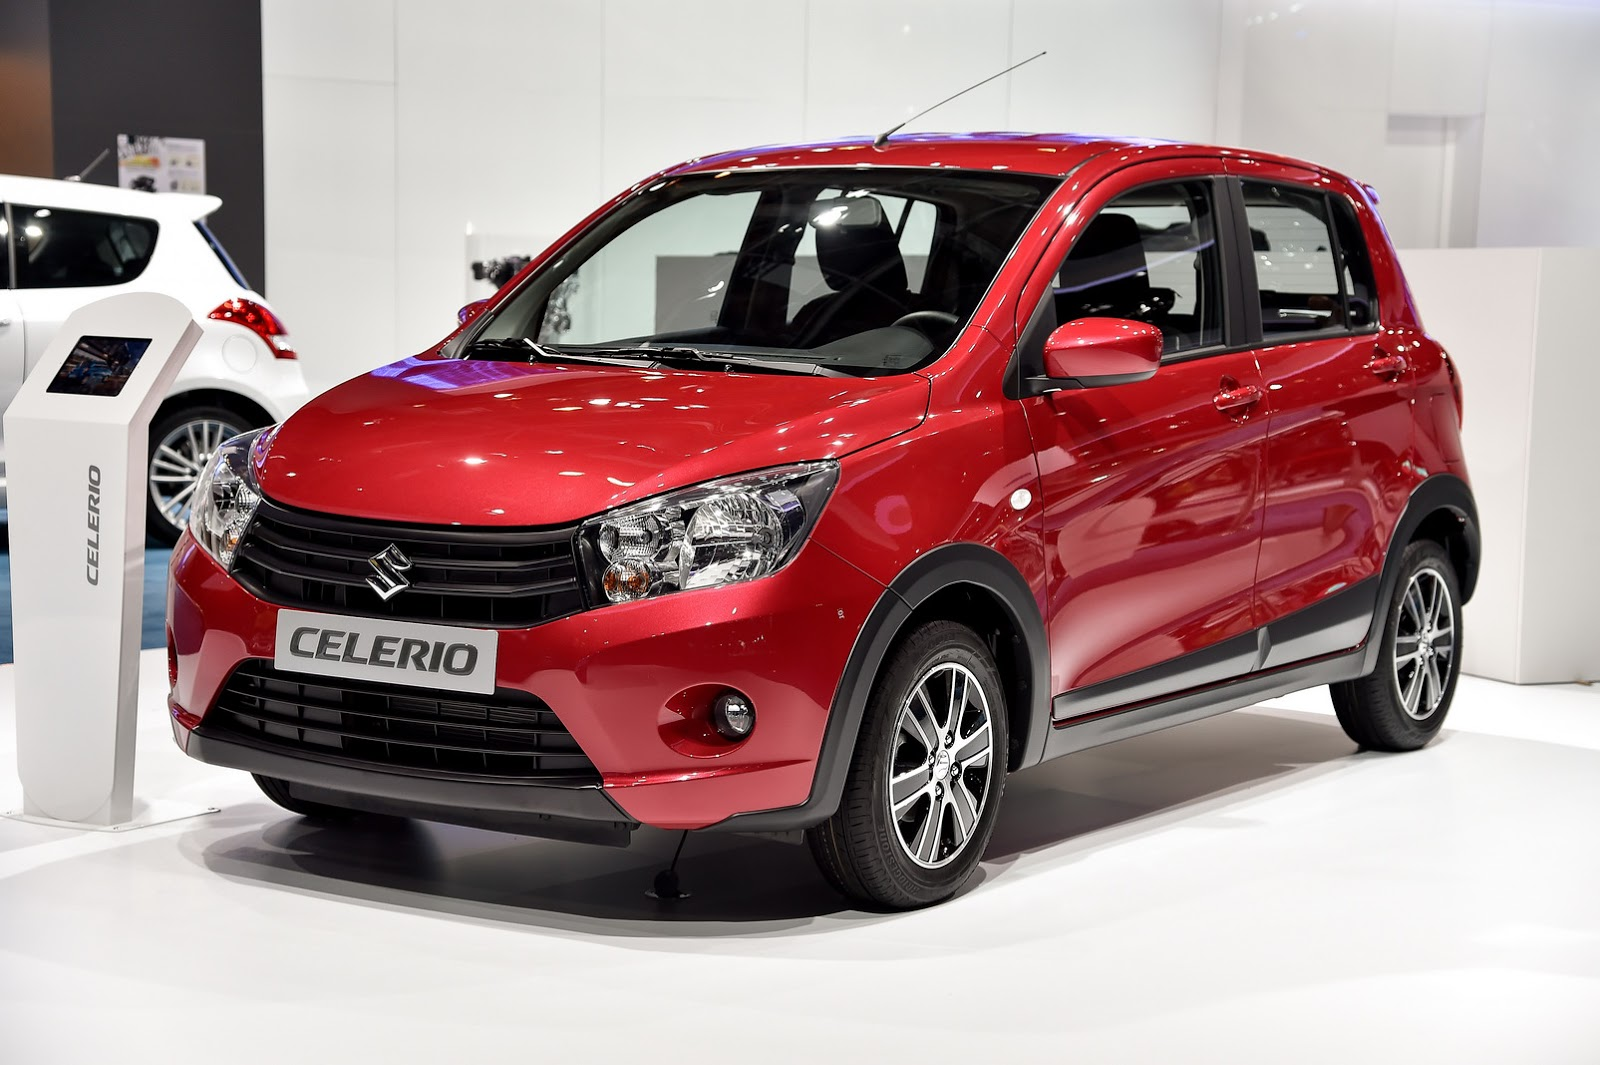 suzukis new celerio city car from 1637999 in the uk